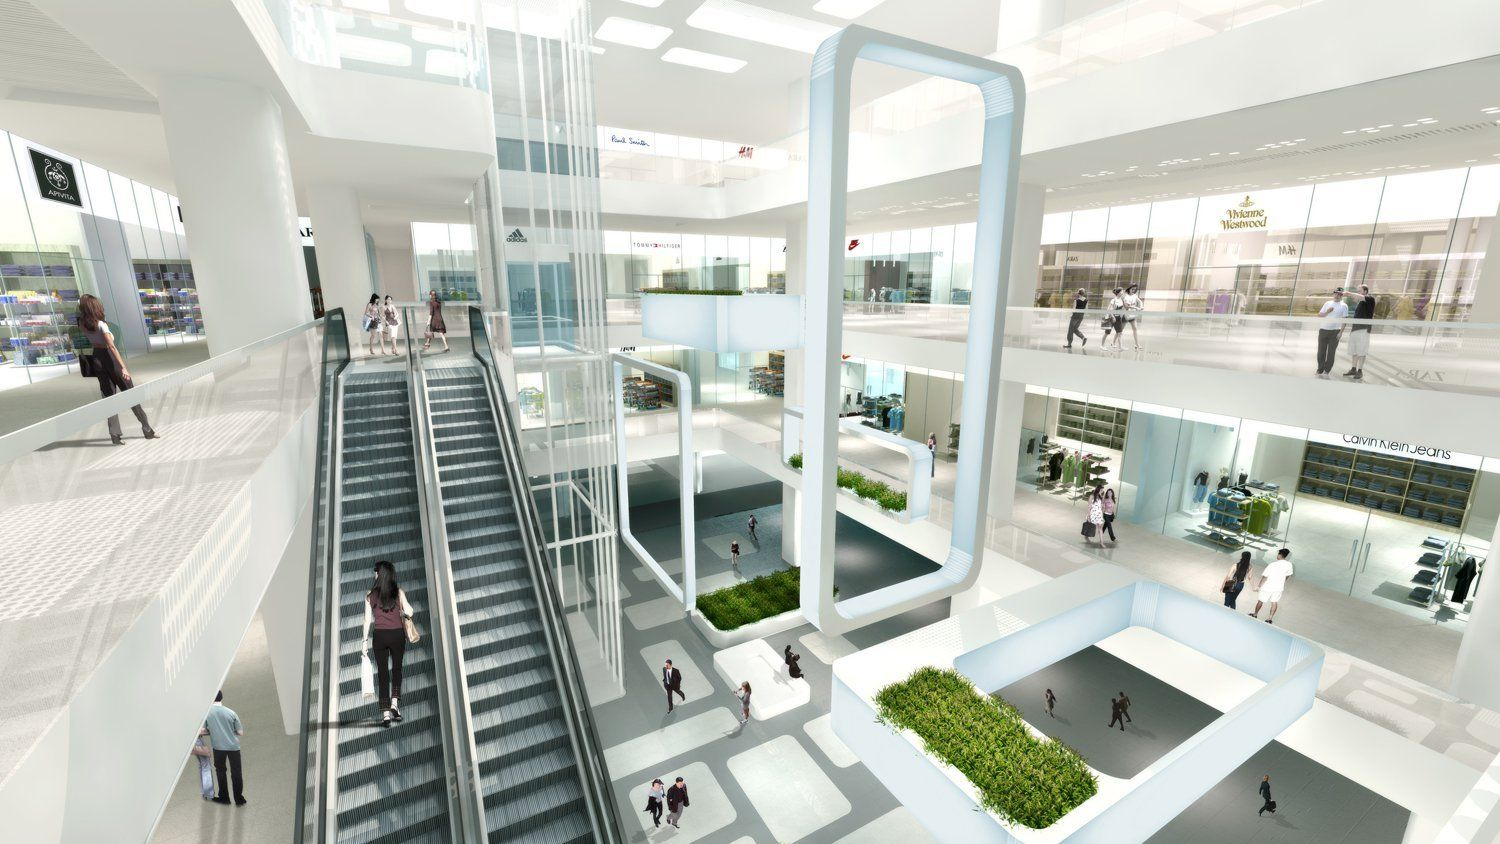 Gallery of Summer International Shopping Mall / 10 Design - 1